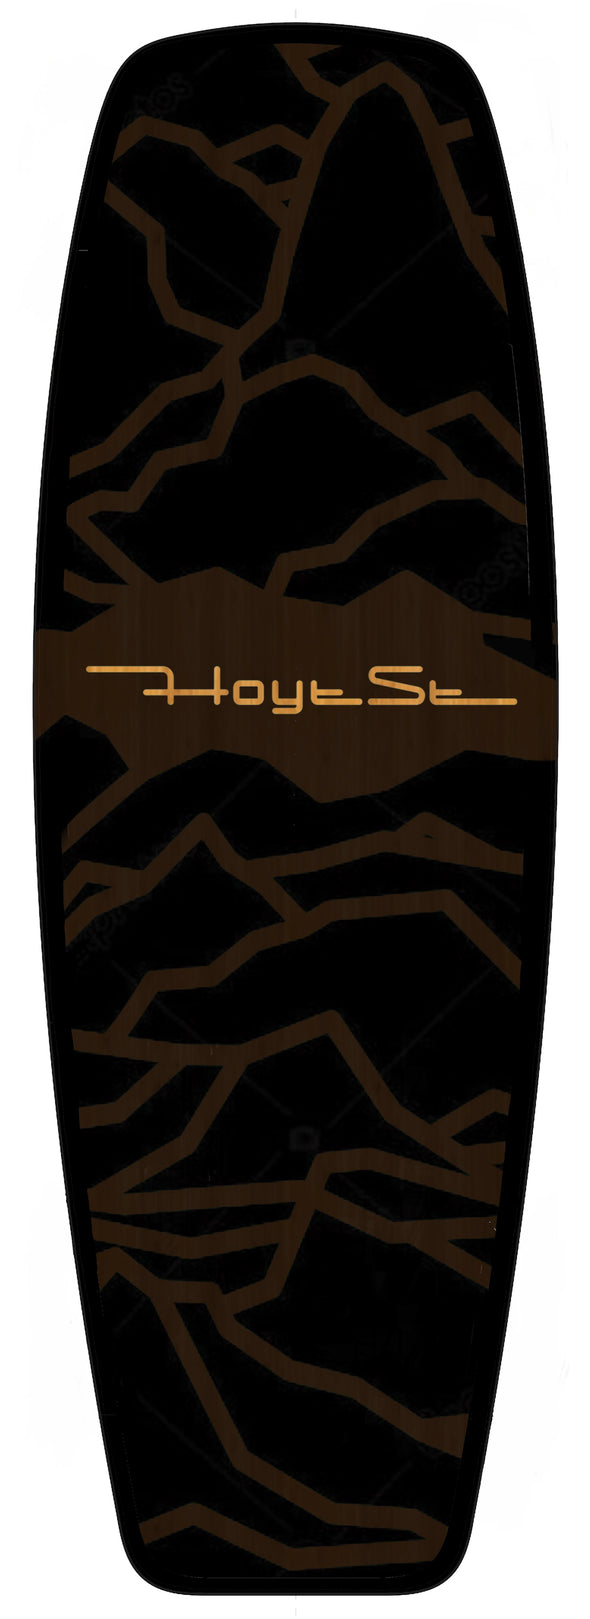 Hoyt St Boo'ger SP (Skatepark Version) Coming 2021